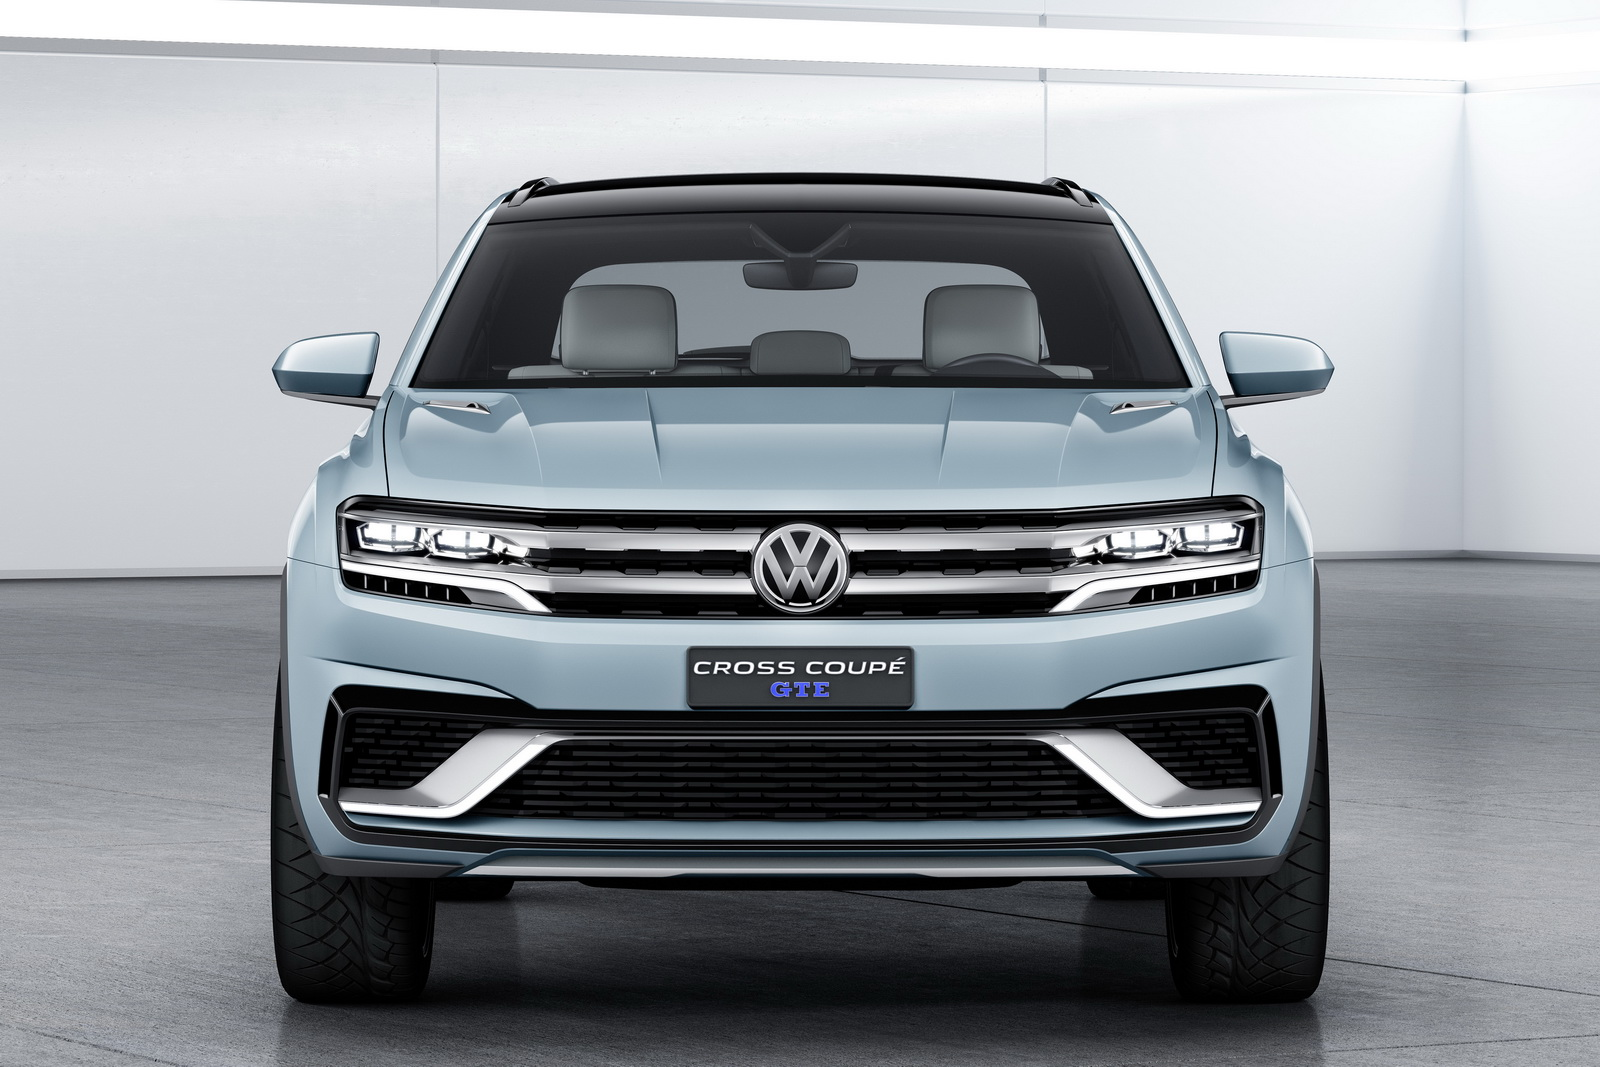 2019 Volkswagen Cross Coupe Concept photo - 1